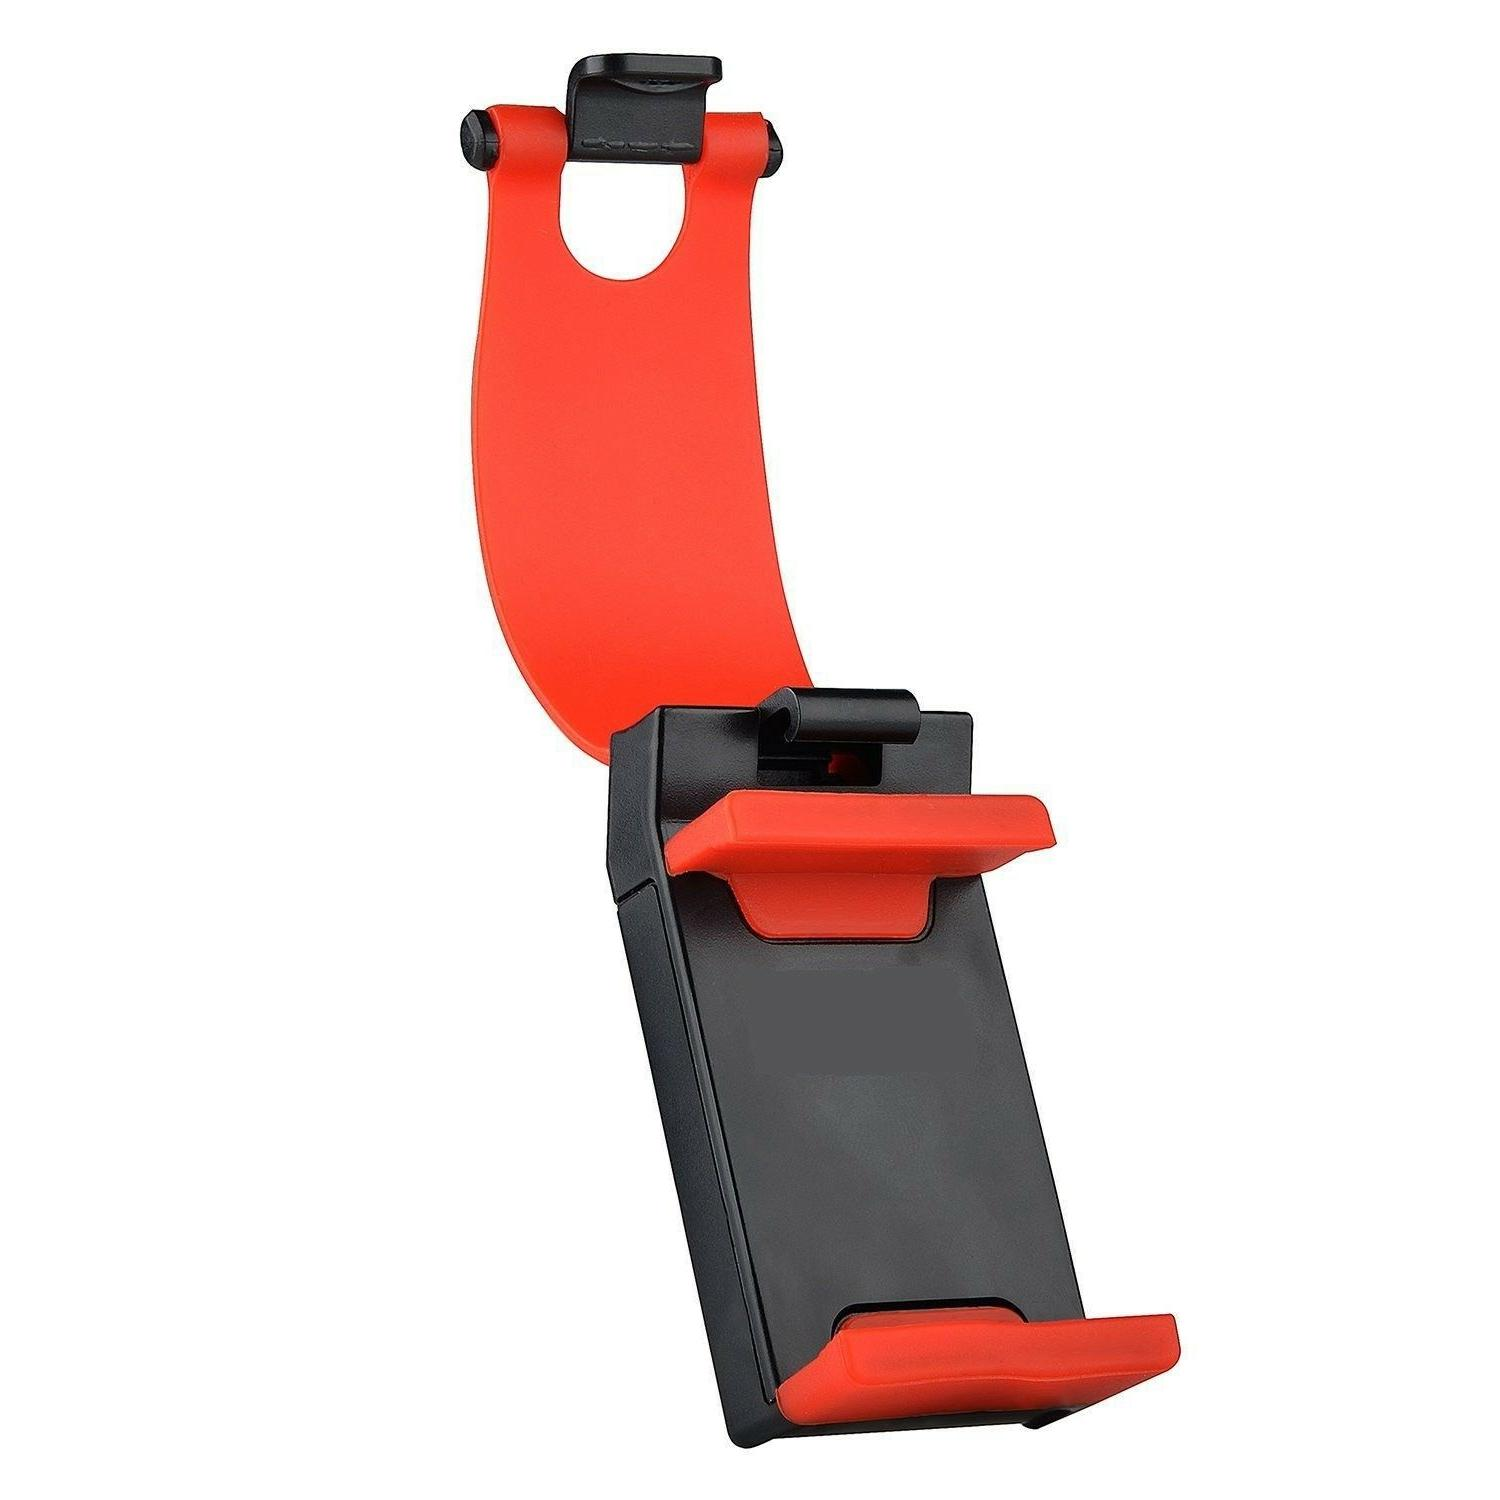 Mount Holder For iPhone 6/7/8/X,Samsung,GPS